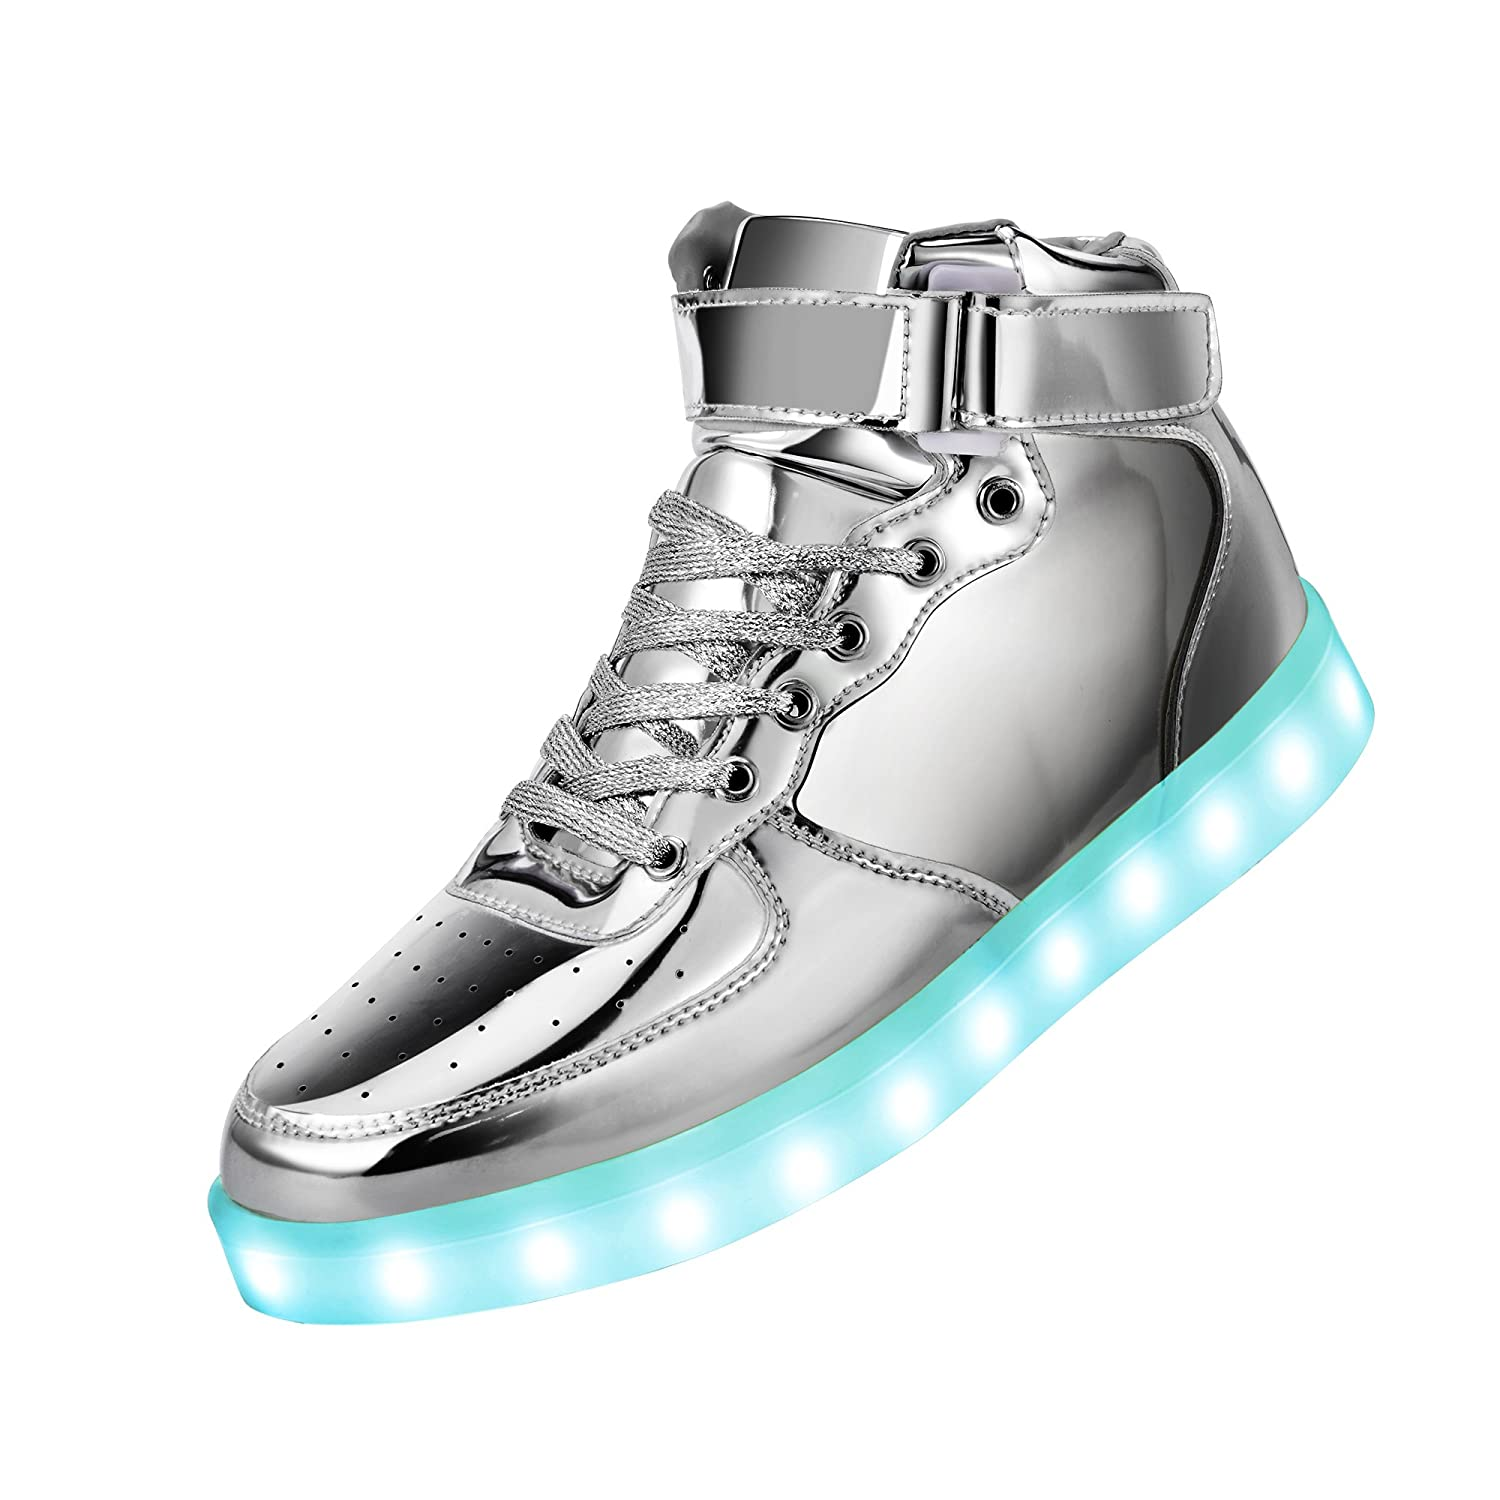 GreatJoy Cool Fun Light up LED Shoes Sneaker 7 Colors USB Charging B072FK3PC1 26/8.5M Toddler Silver